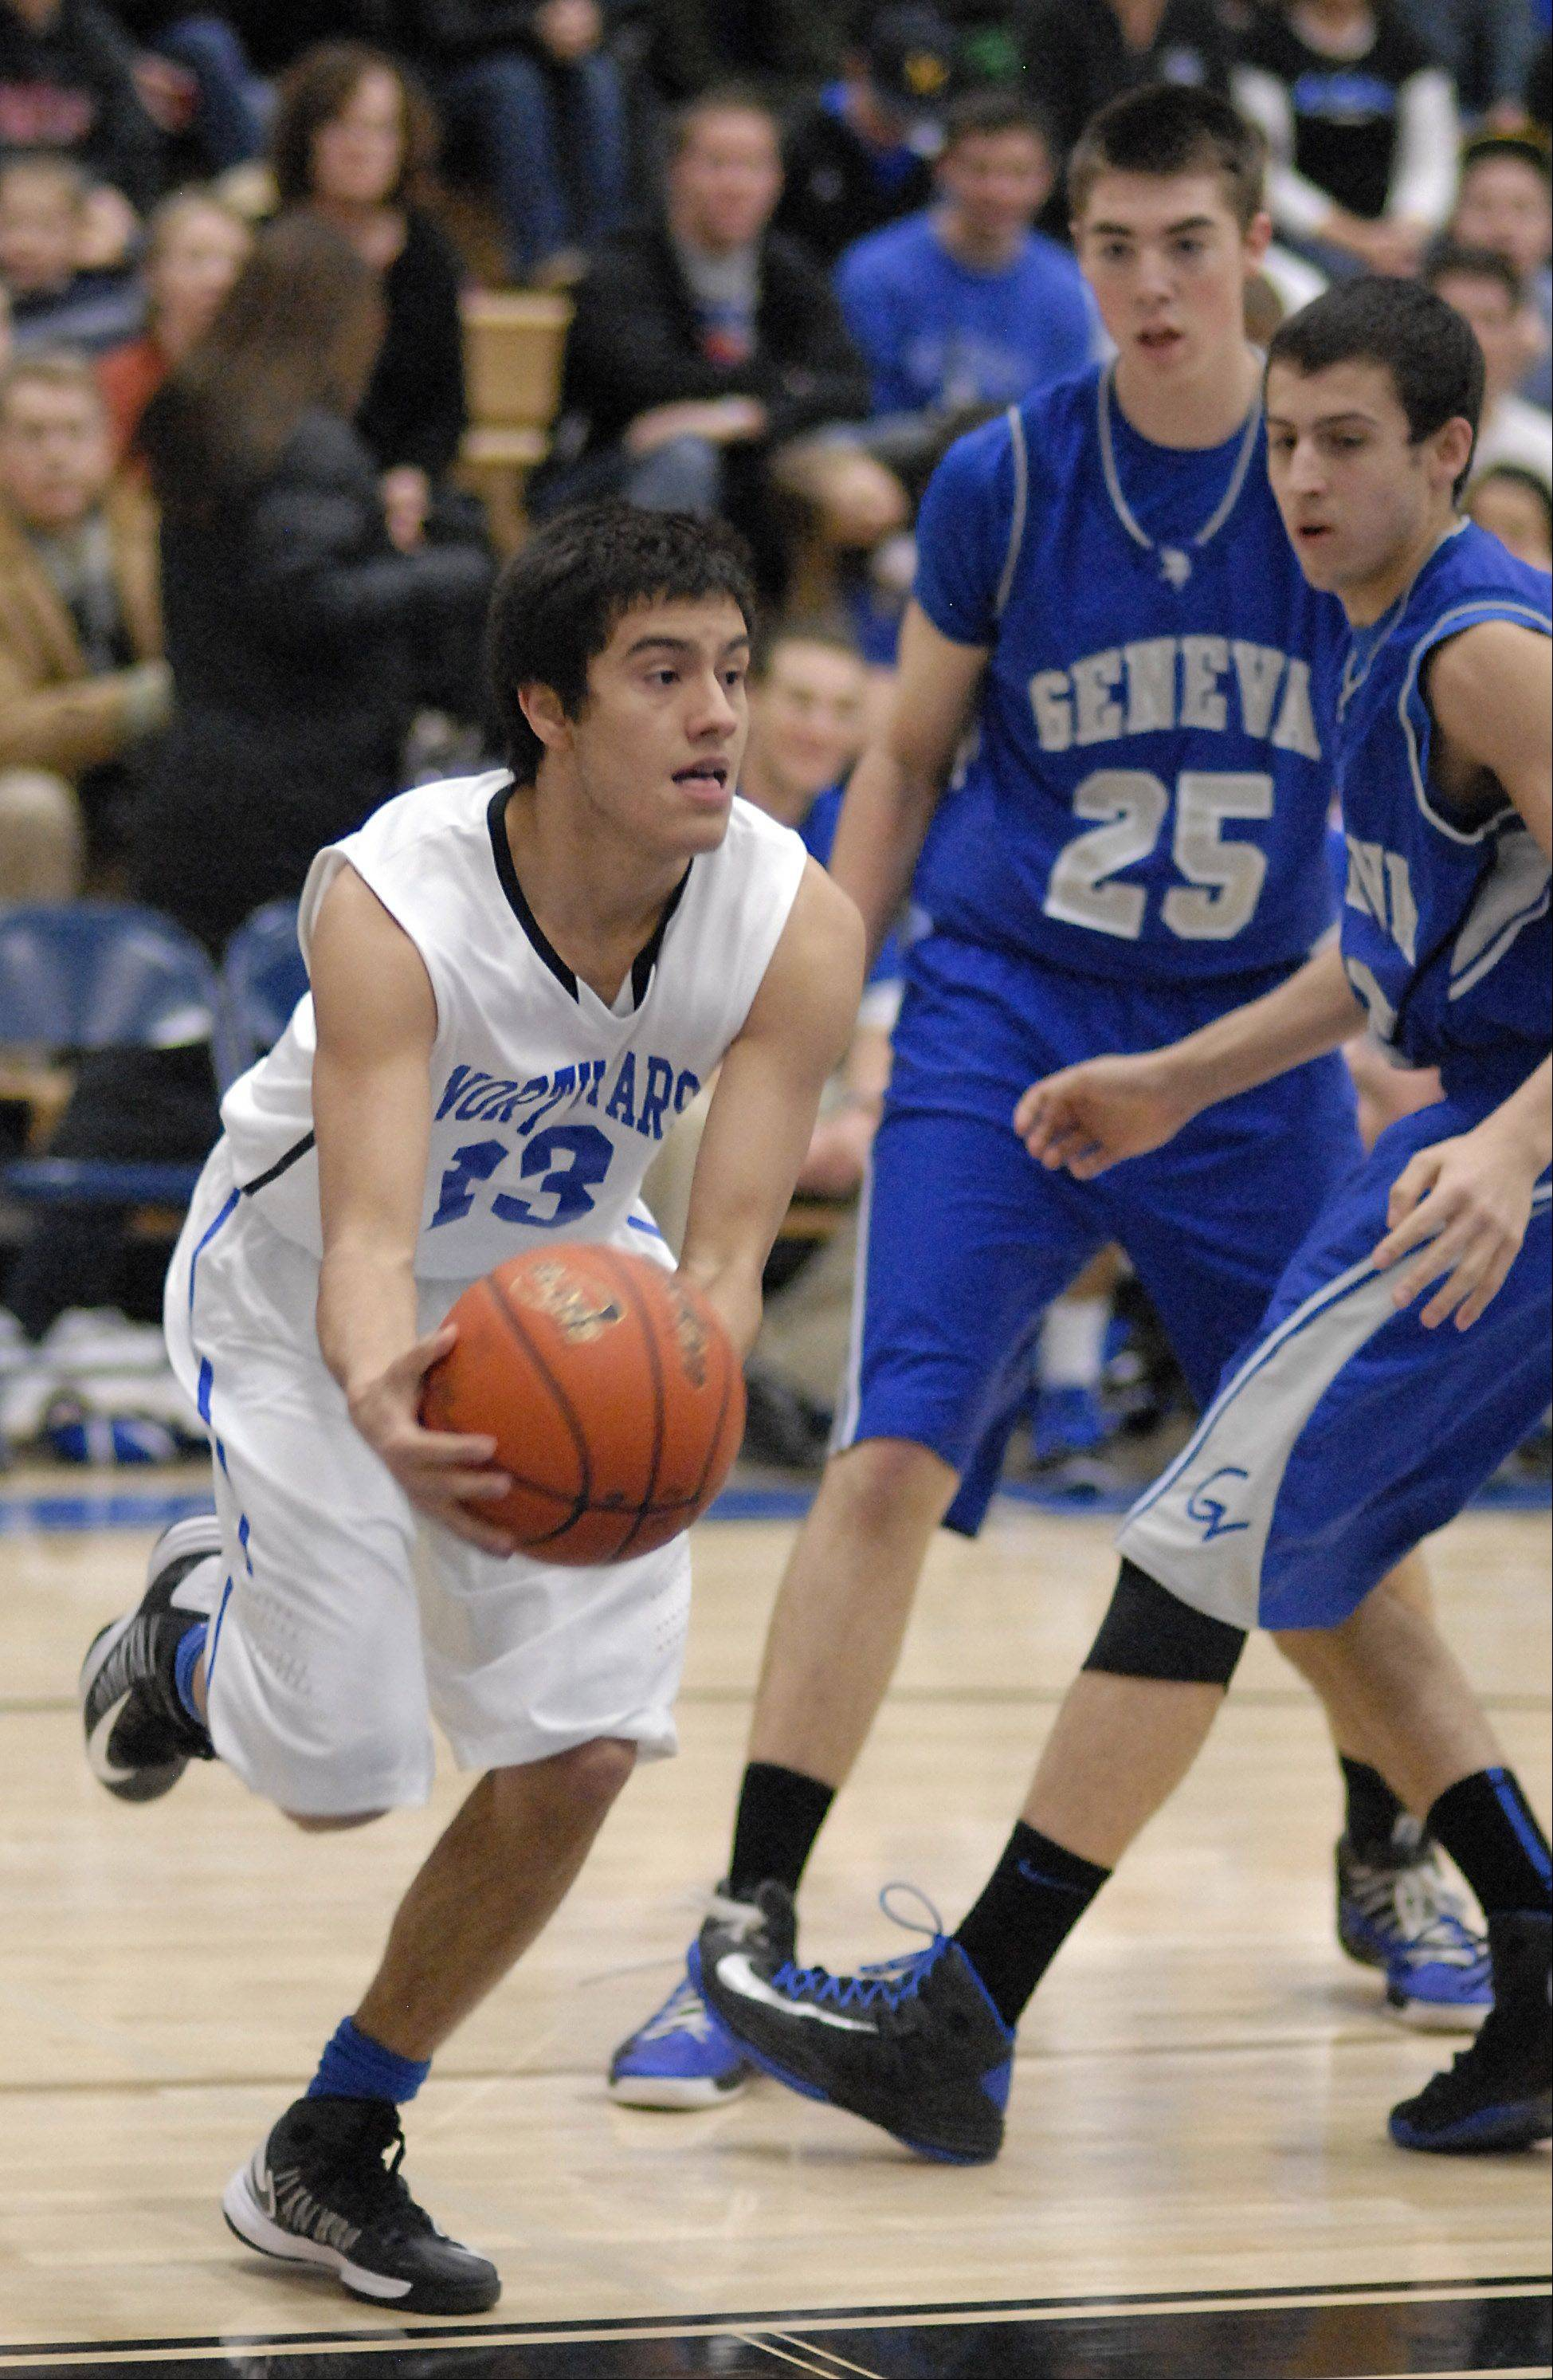 Images from the Geneva vs. St. Charles North boys basketball game Friday, December 21, 2012.